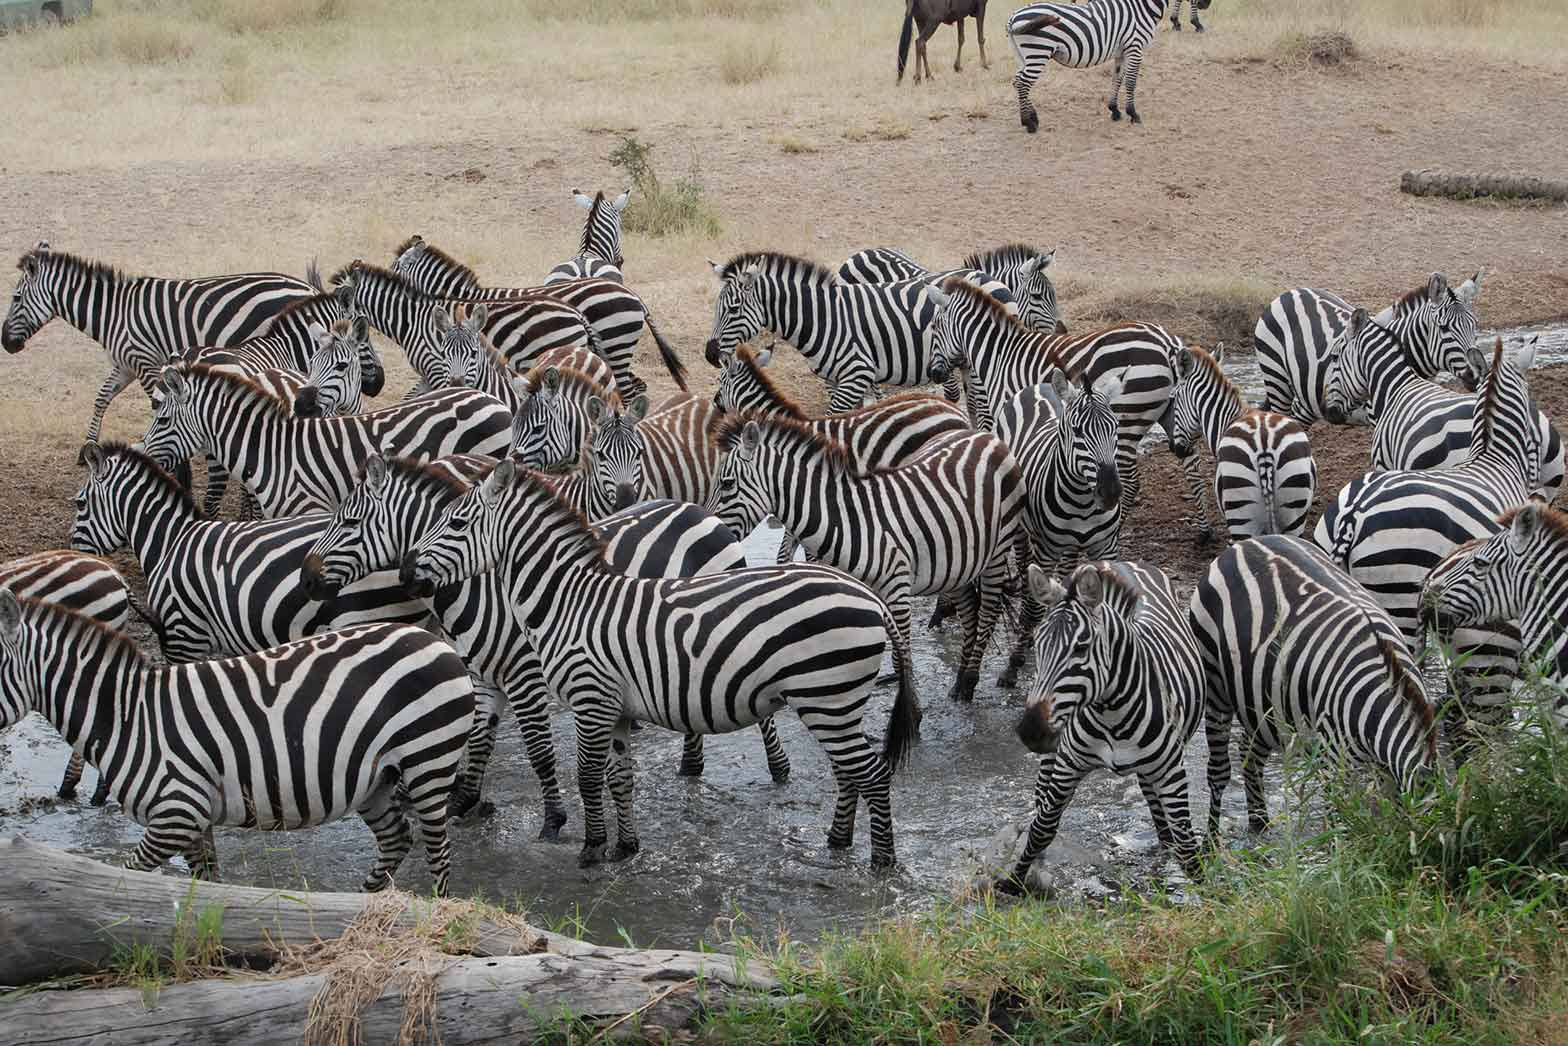 Zebra Watering Hold - The Serengeti